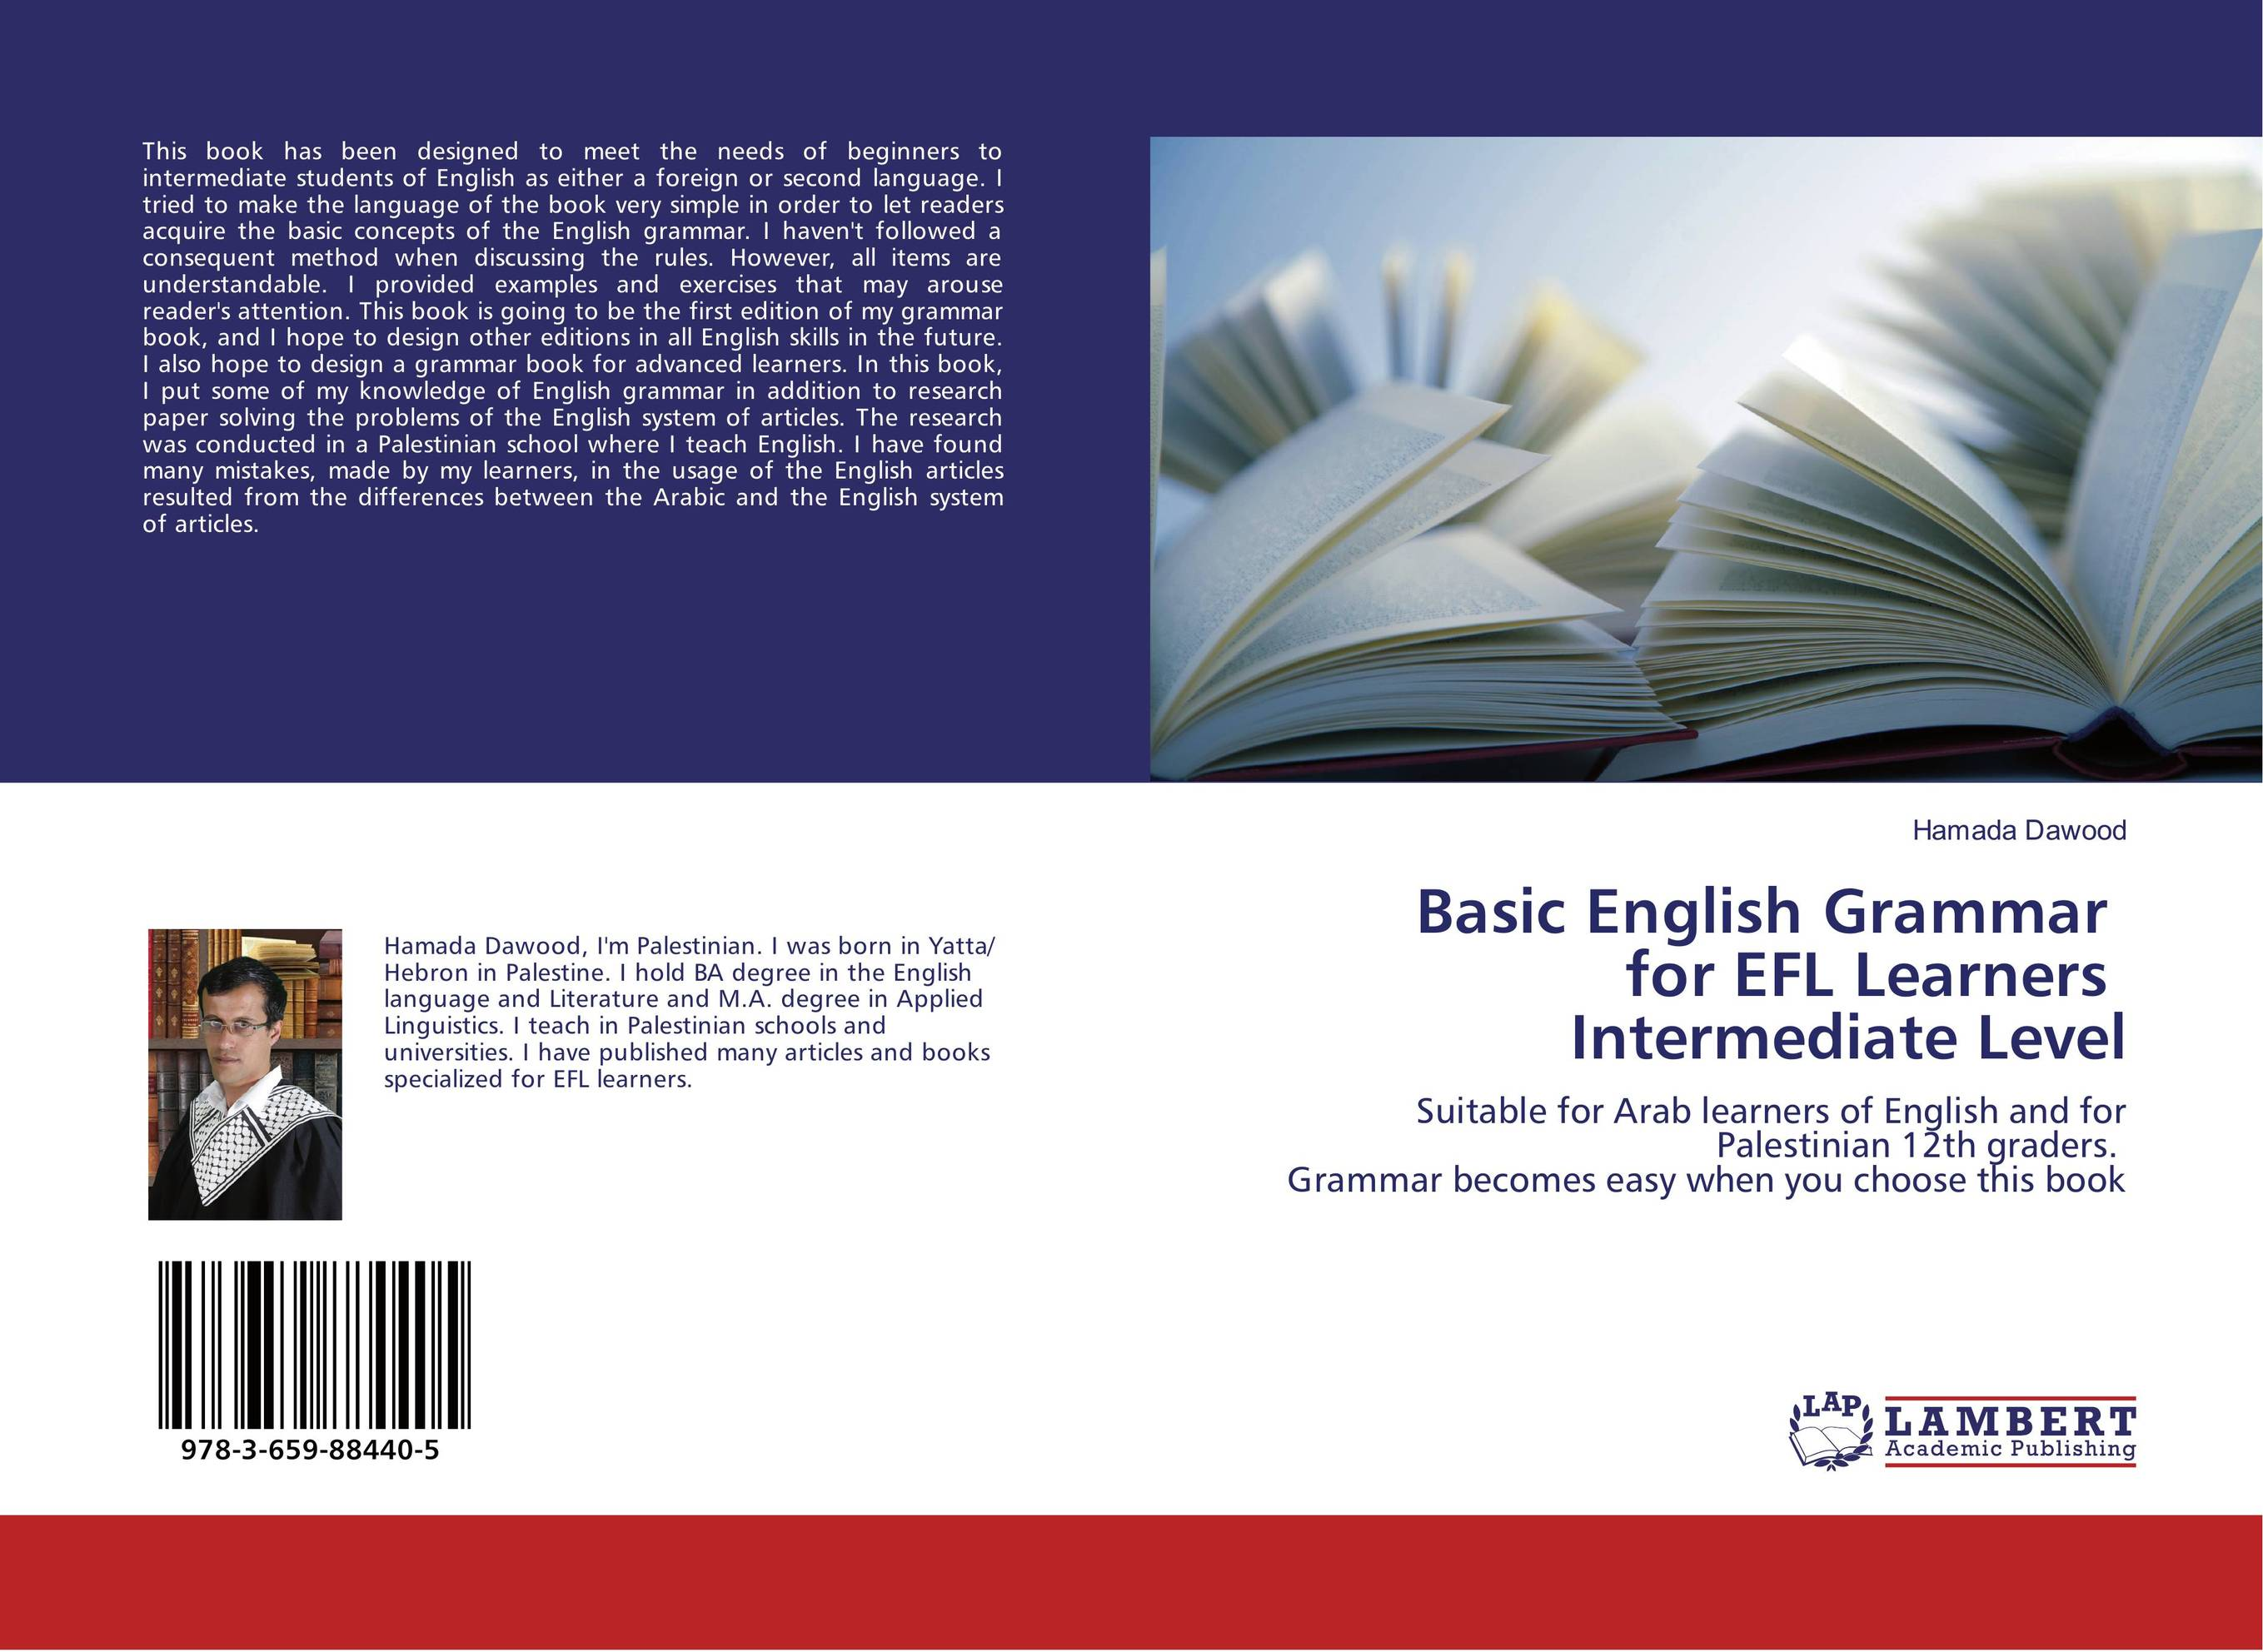 Basic English Grammar for EFL Learners Intermediate Level